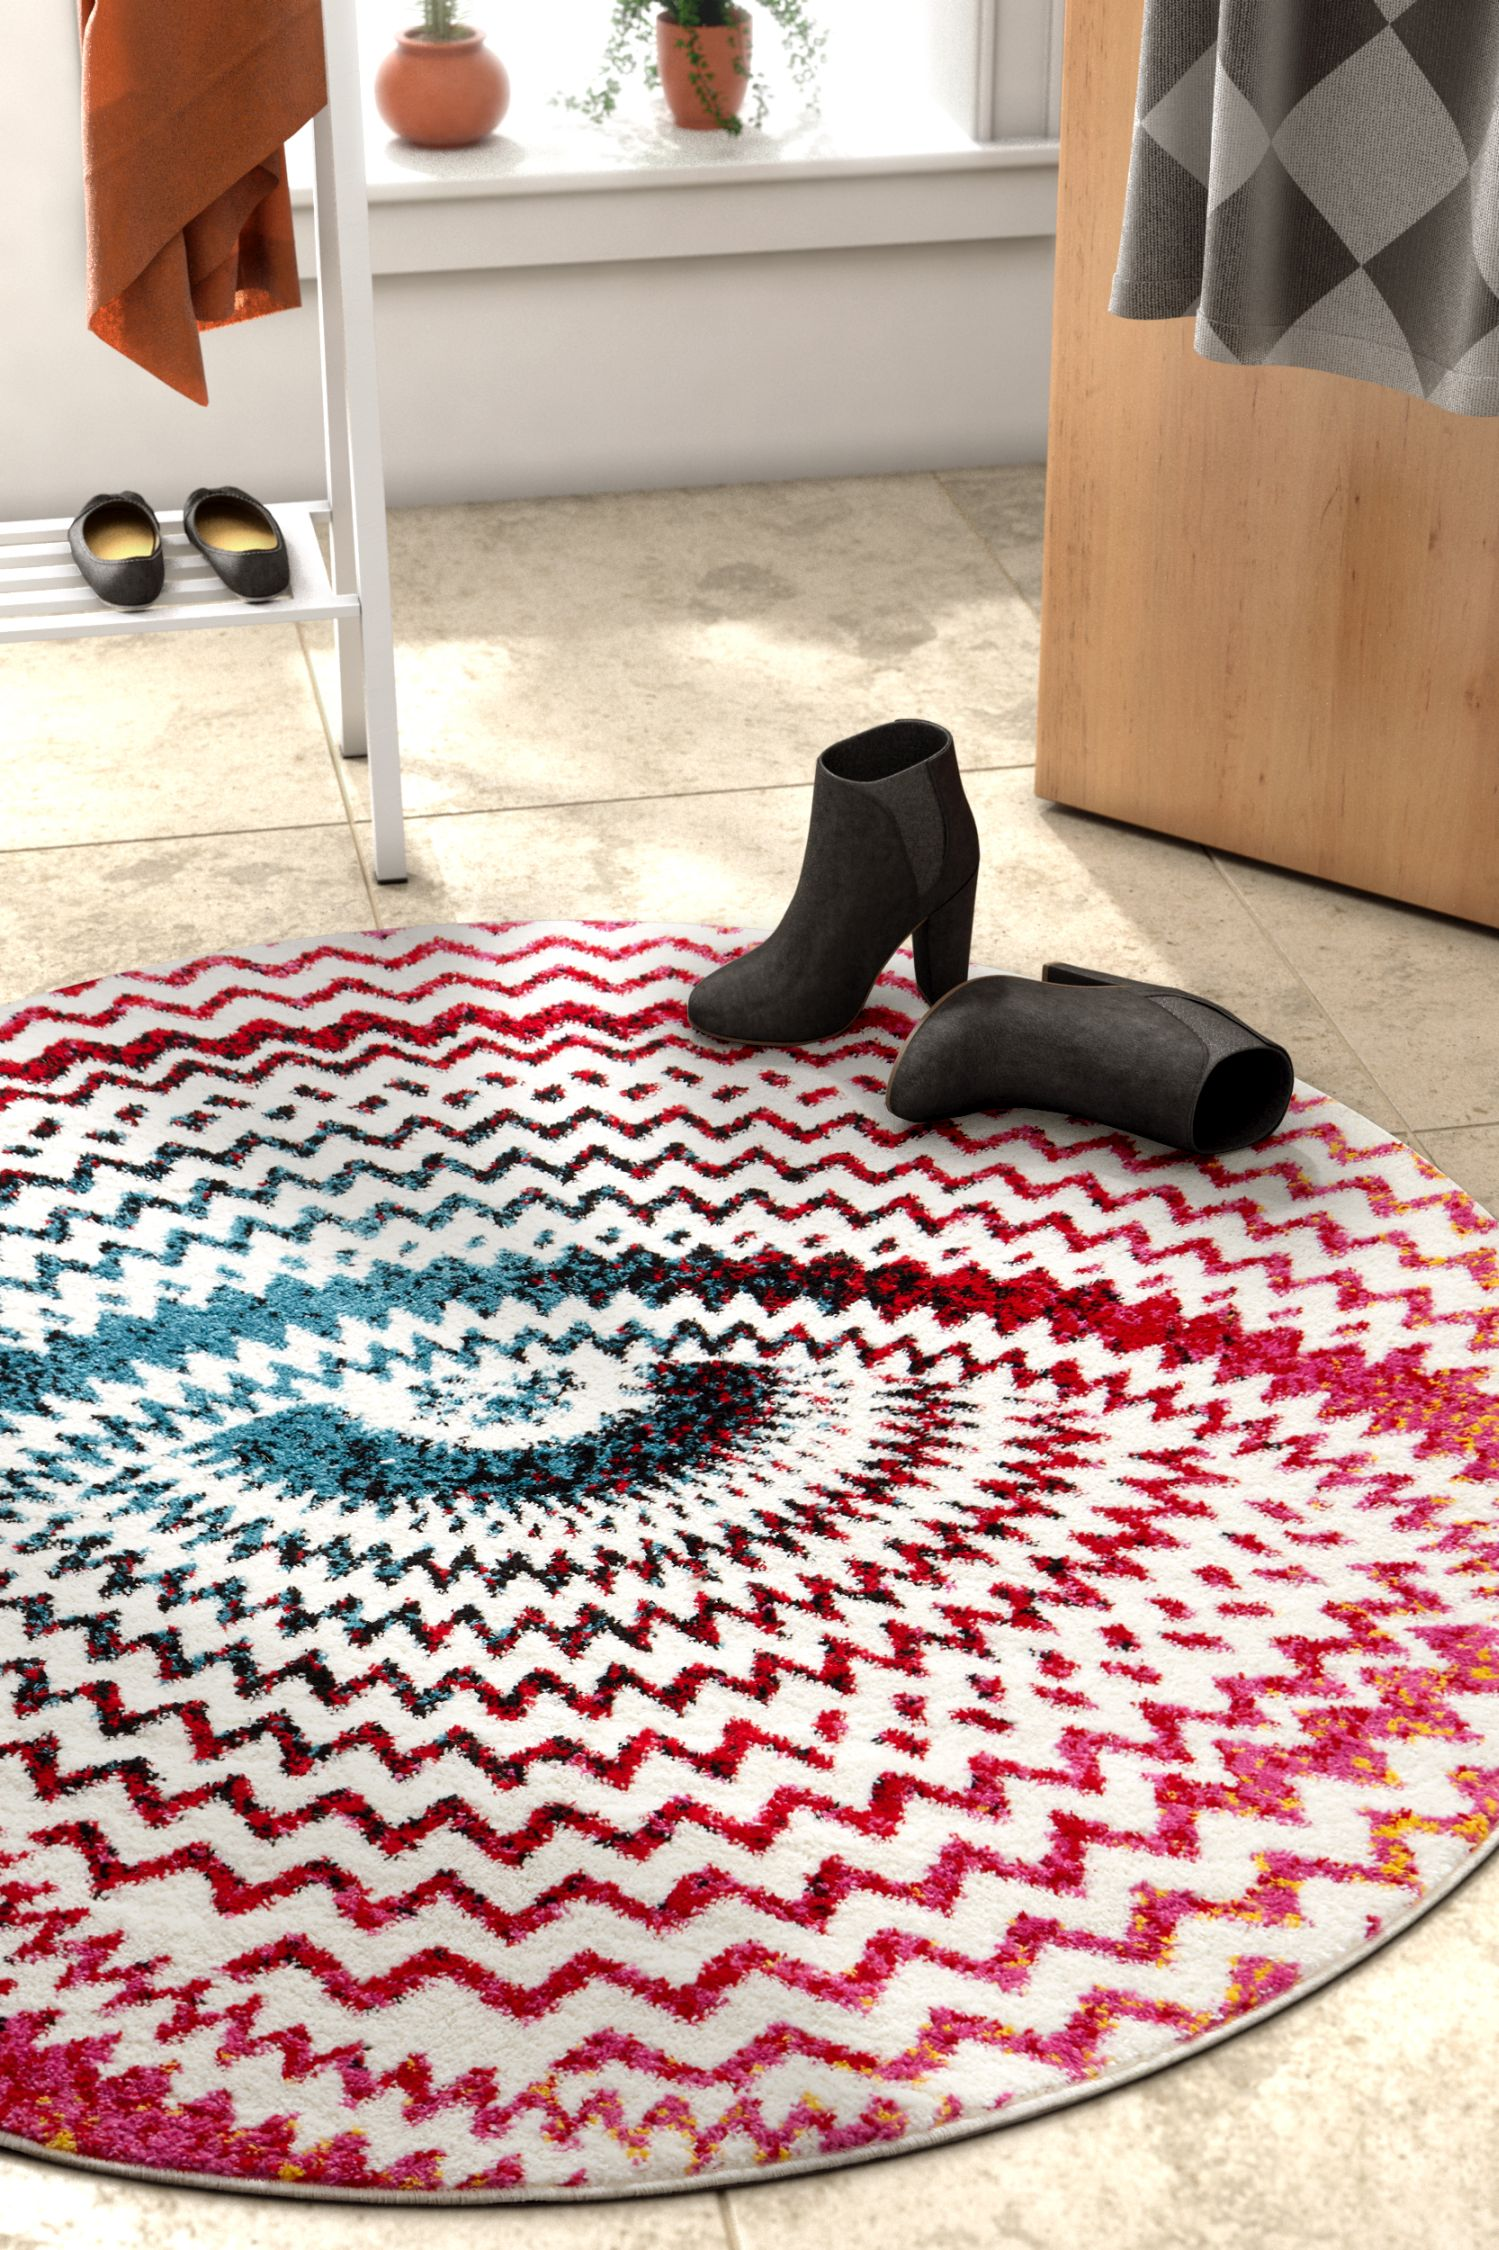 Warp Multi Chevron Red Blue Yellow Green Zigzag Modern Abstract 3d 5x5 5 3 Round Area Rug Easy Clean Stain Fade Resistant Shed Free Contemporary Geometric Thick Soft Plush Living Dining Room